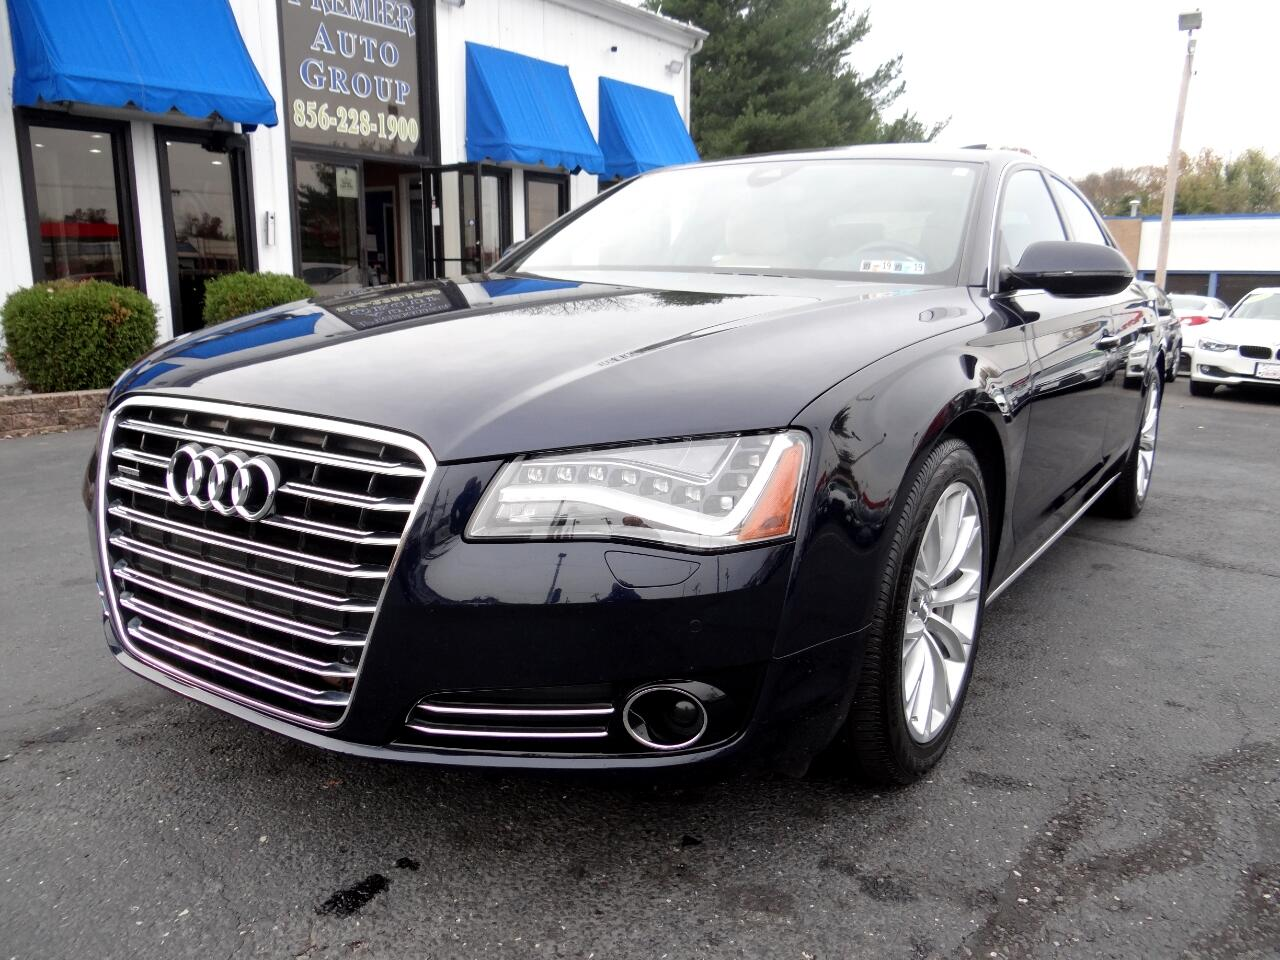 2012 Audi A8 4DR SDN AWD